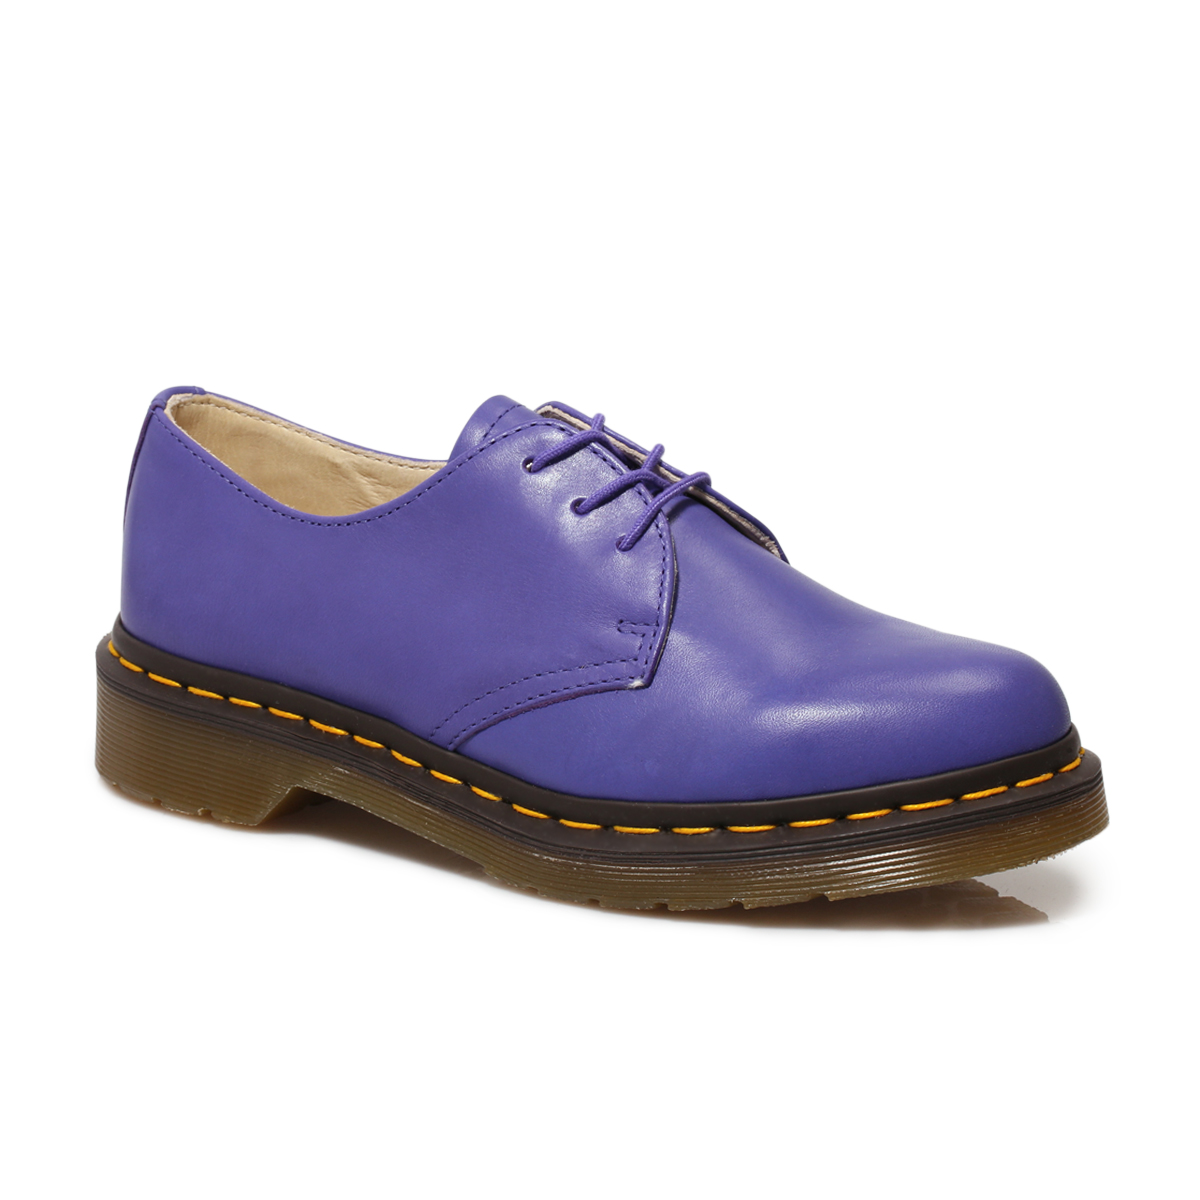 Awesome Dr Martens Womens Shoes